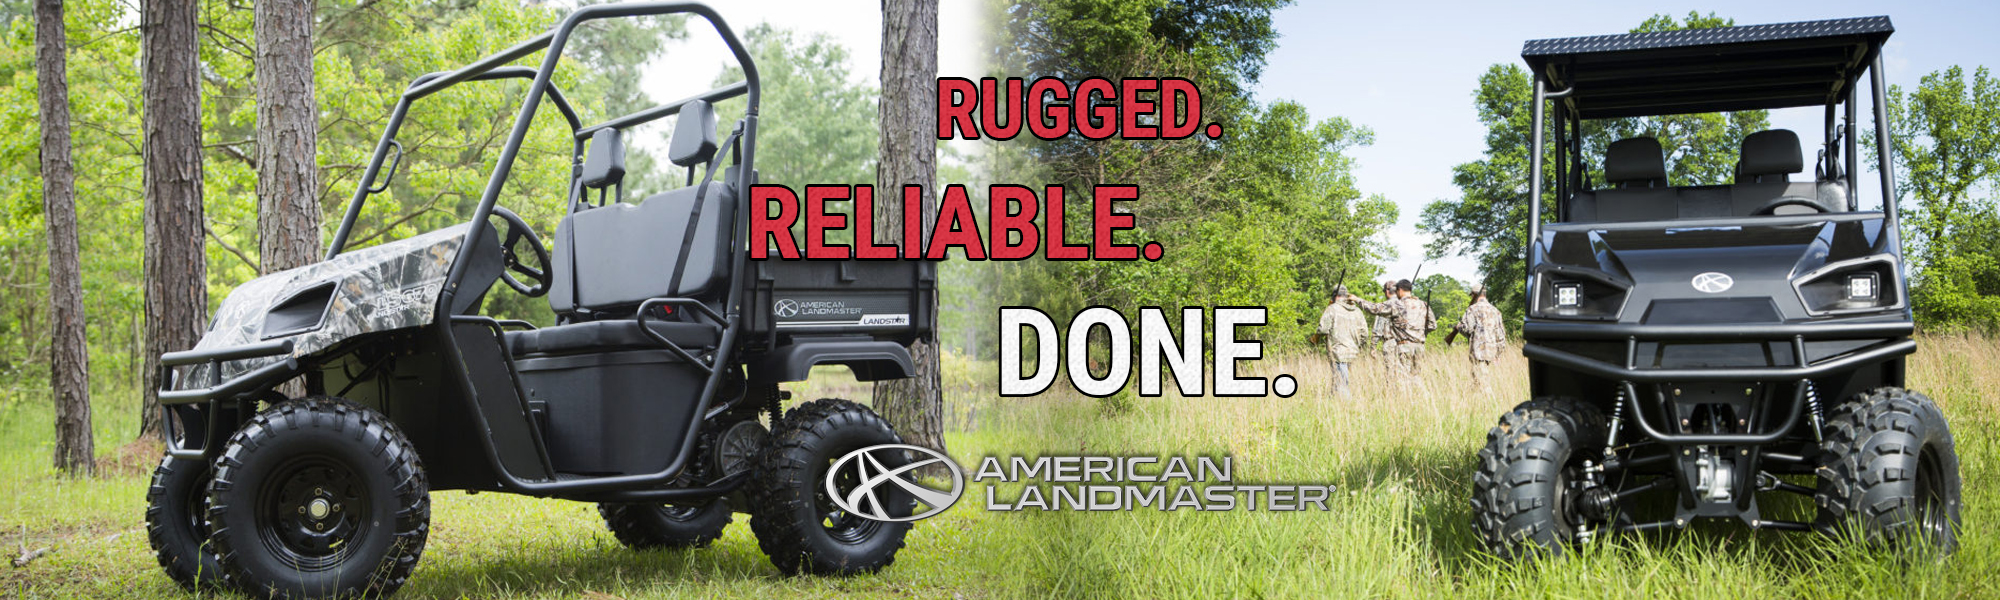 Home   Lawn Mowers and Intimidator UTVs for sale in Jackson